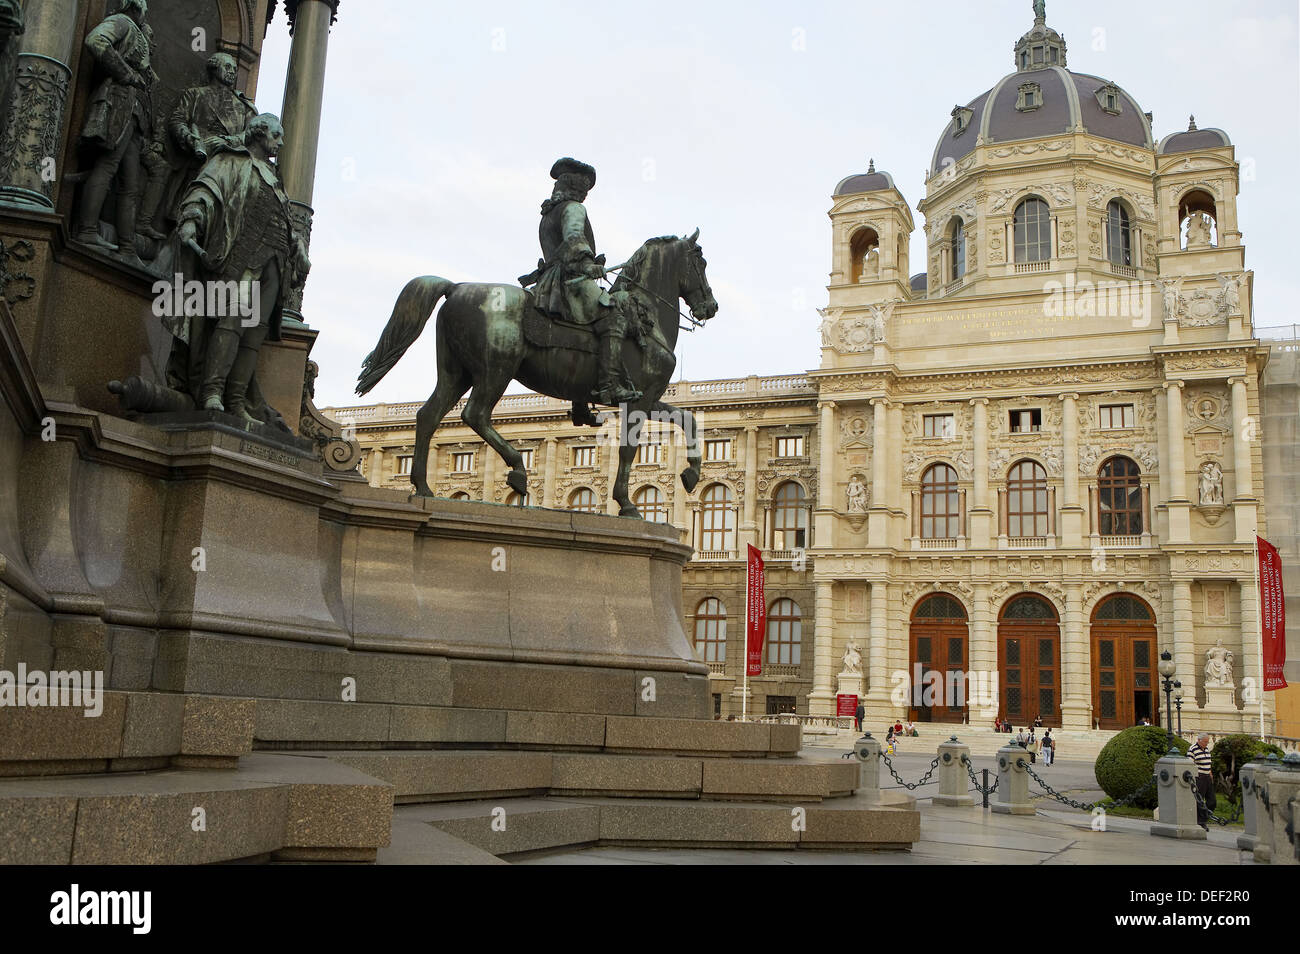 Kunsthistorisches Museum (Museum of Art History) at Maria-Theresien-Platz, Vienna. Austria Stock Photo